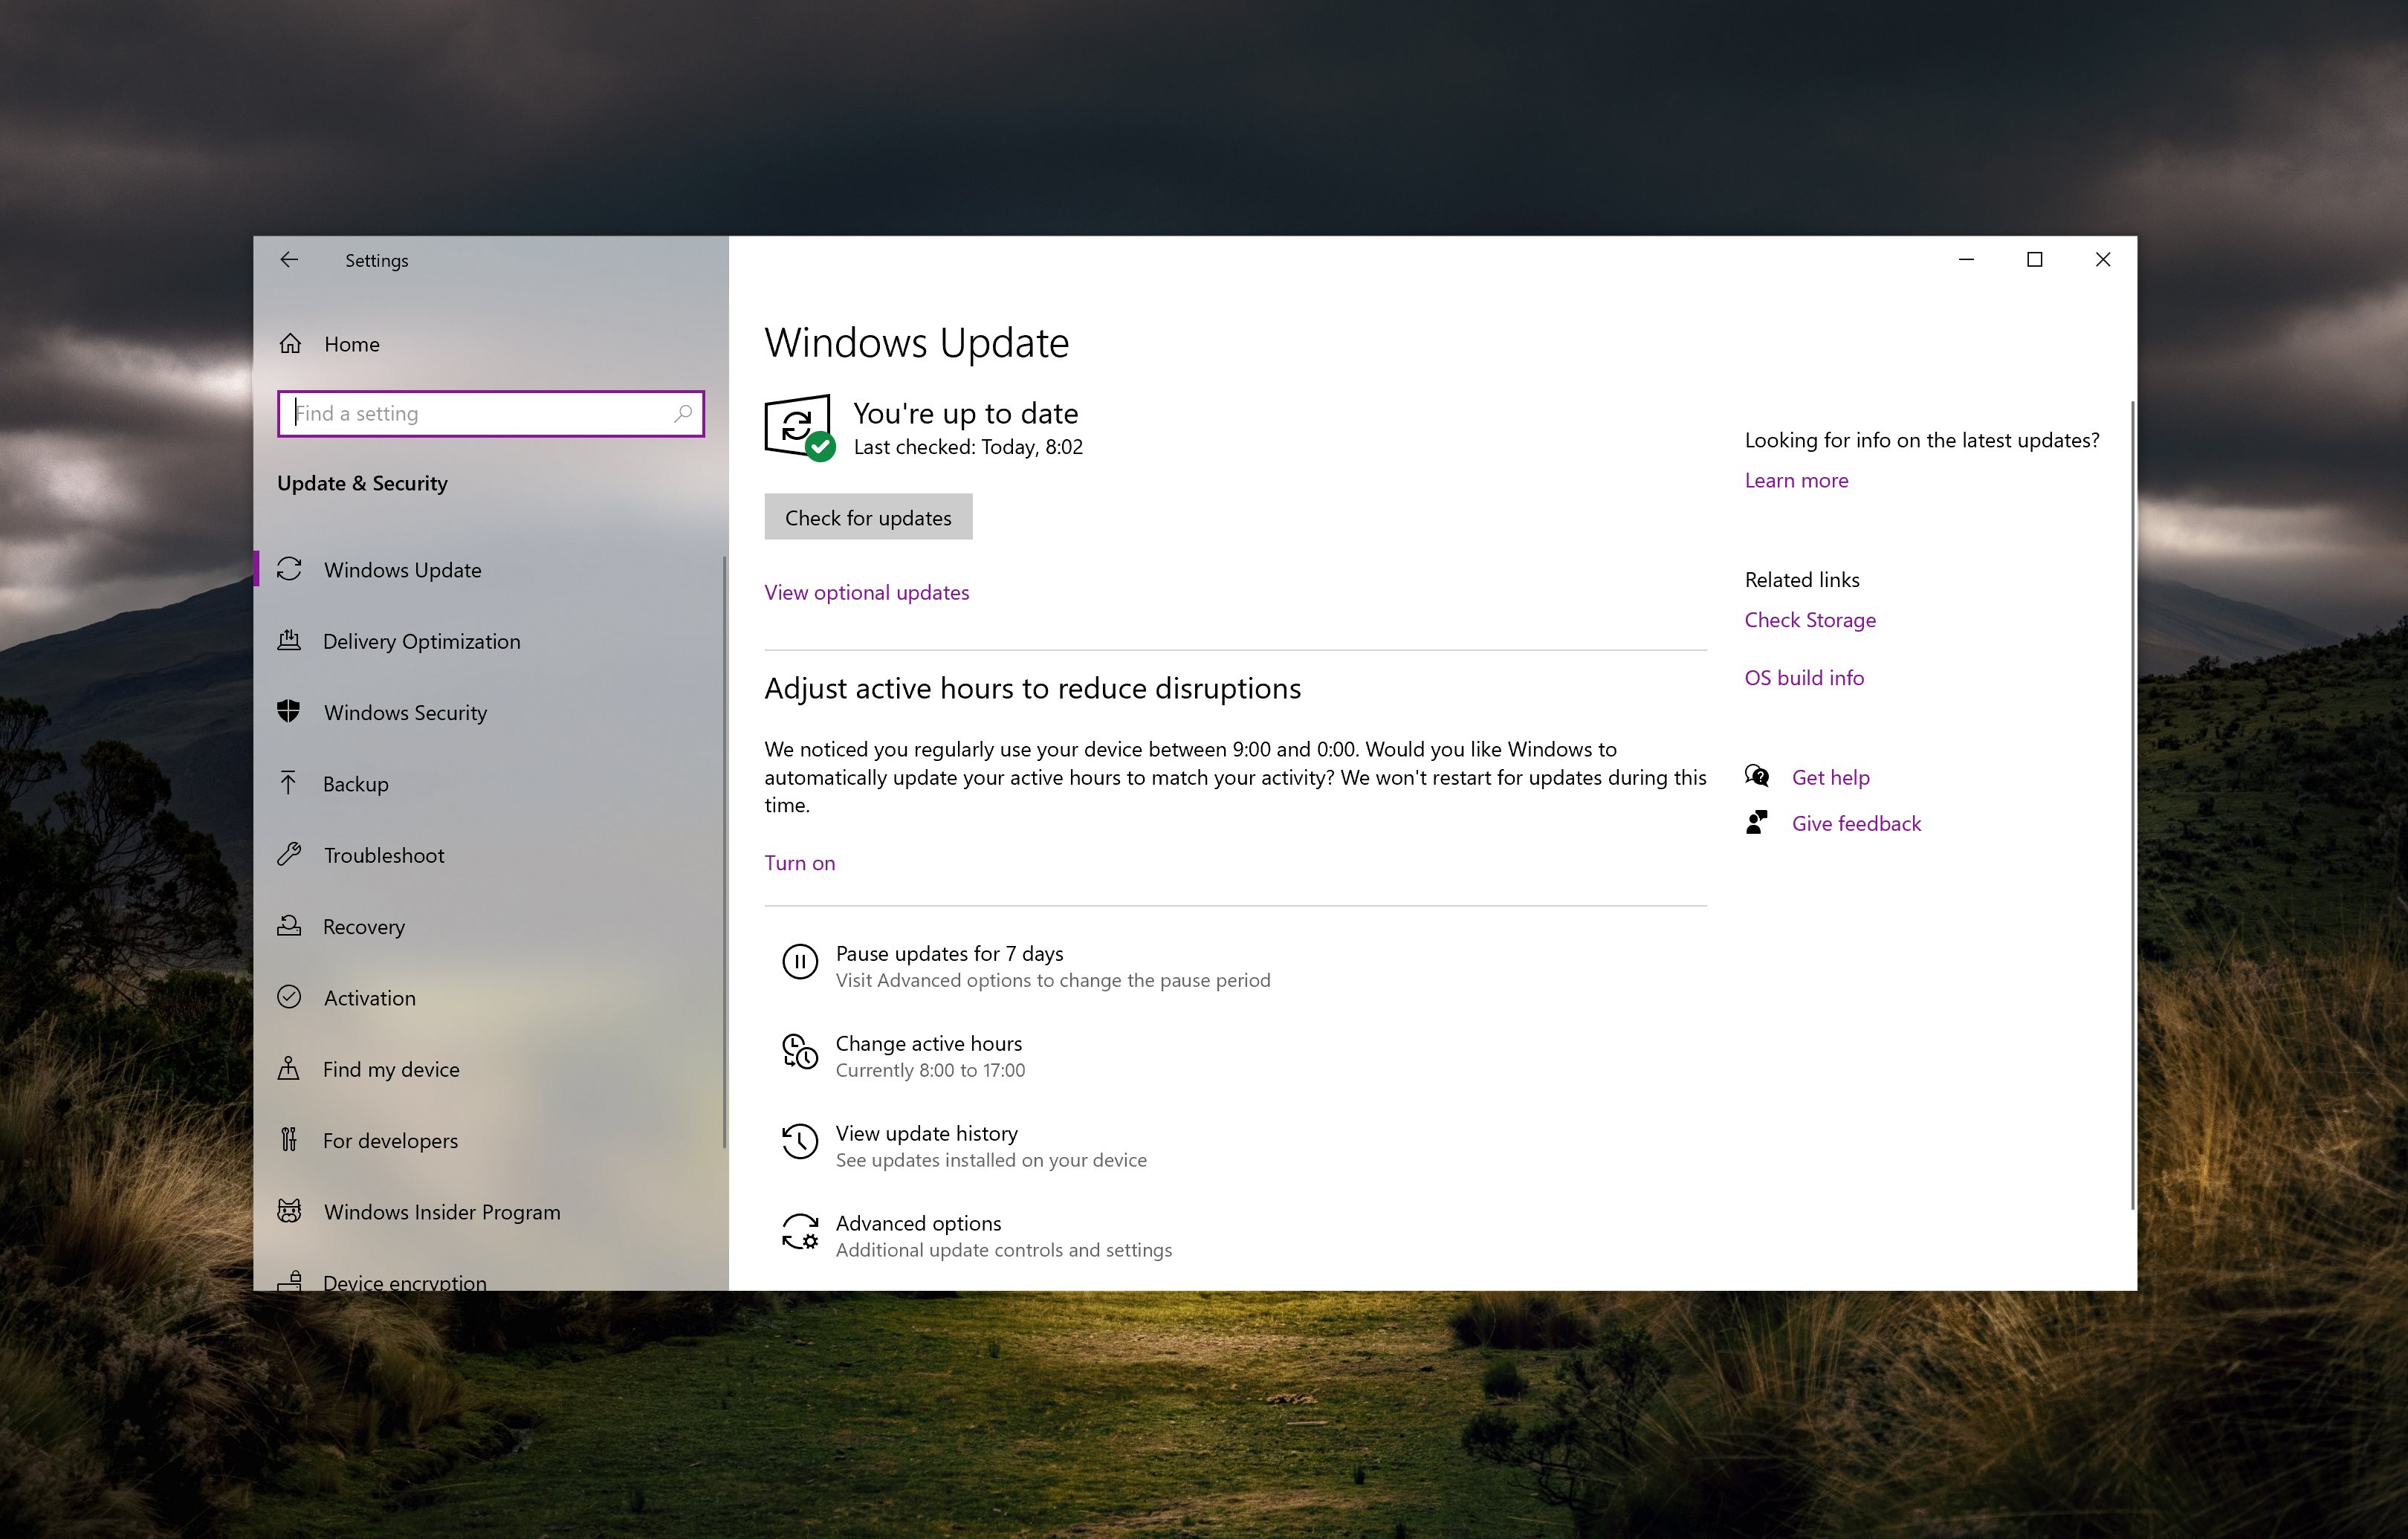 Sorry, no preview releases for Windows 10 this December